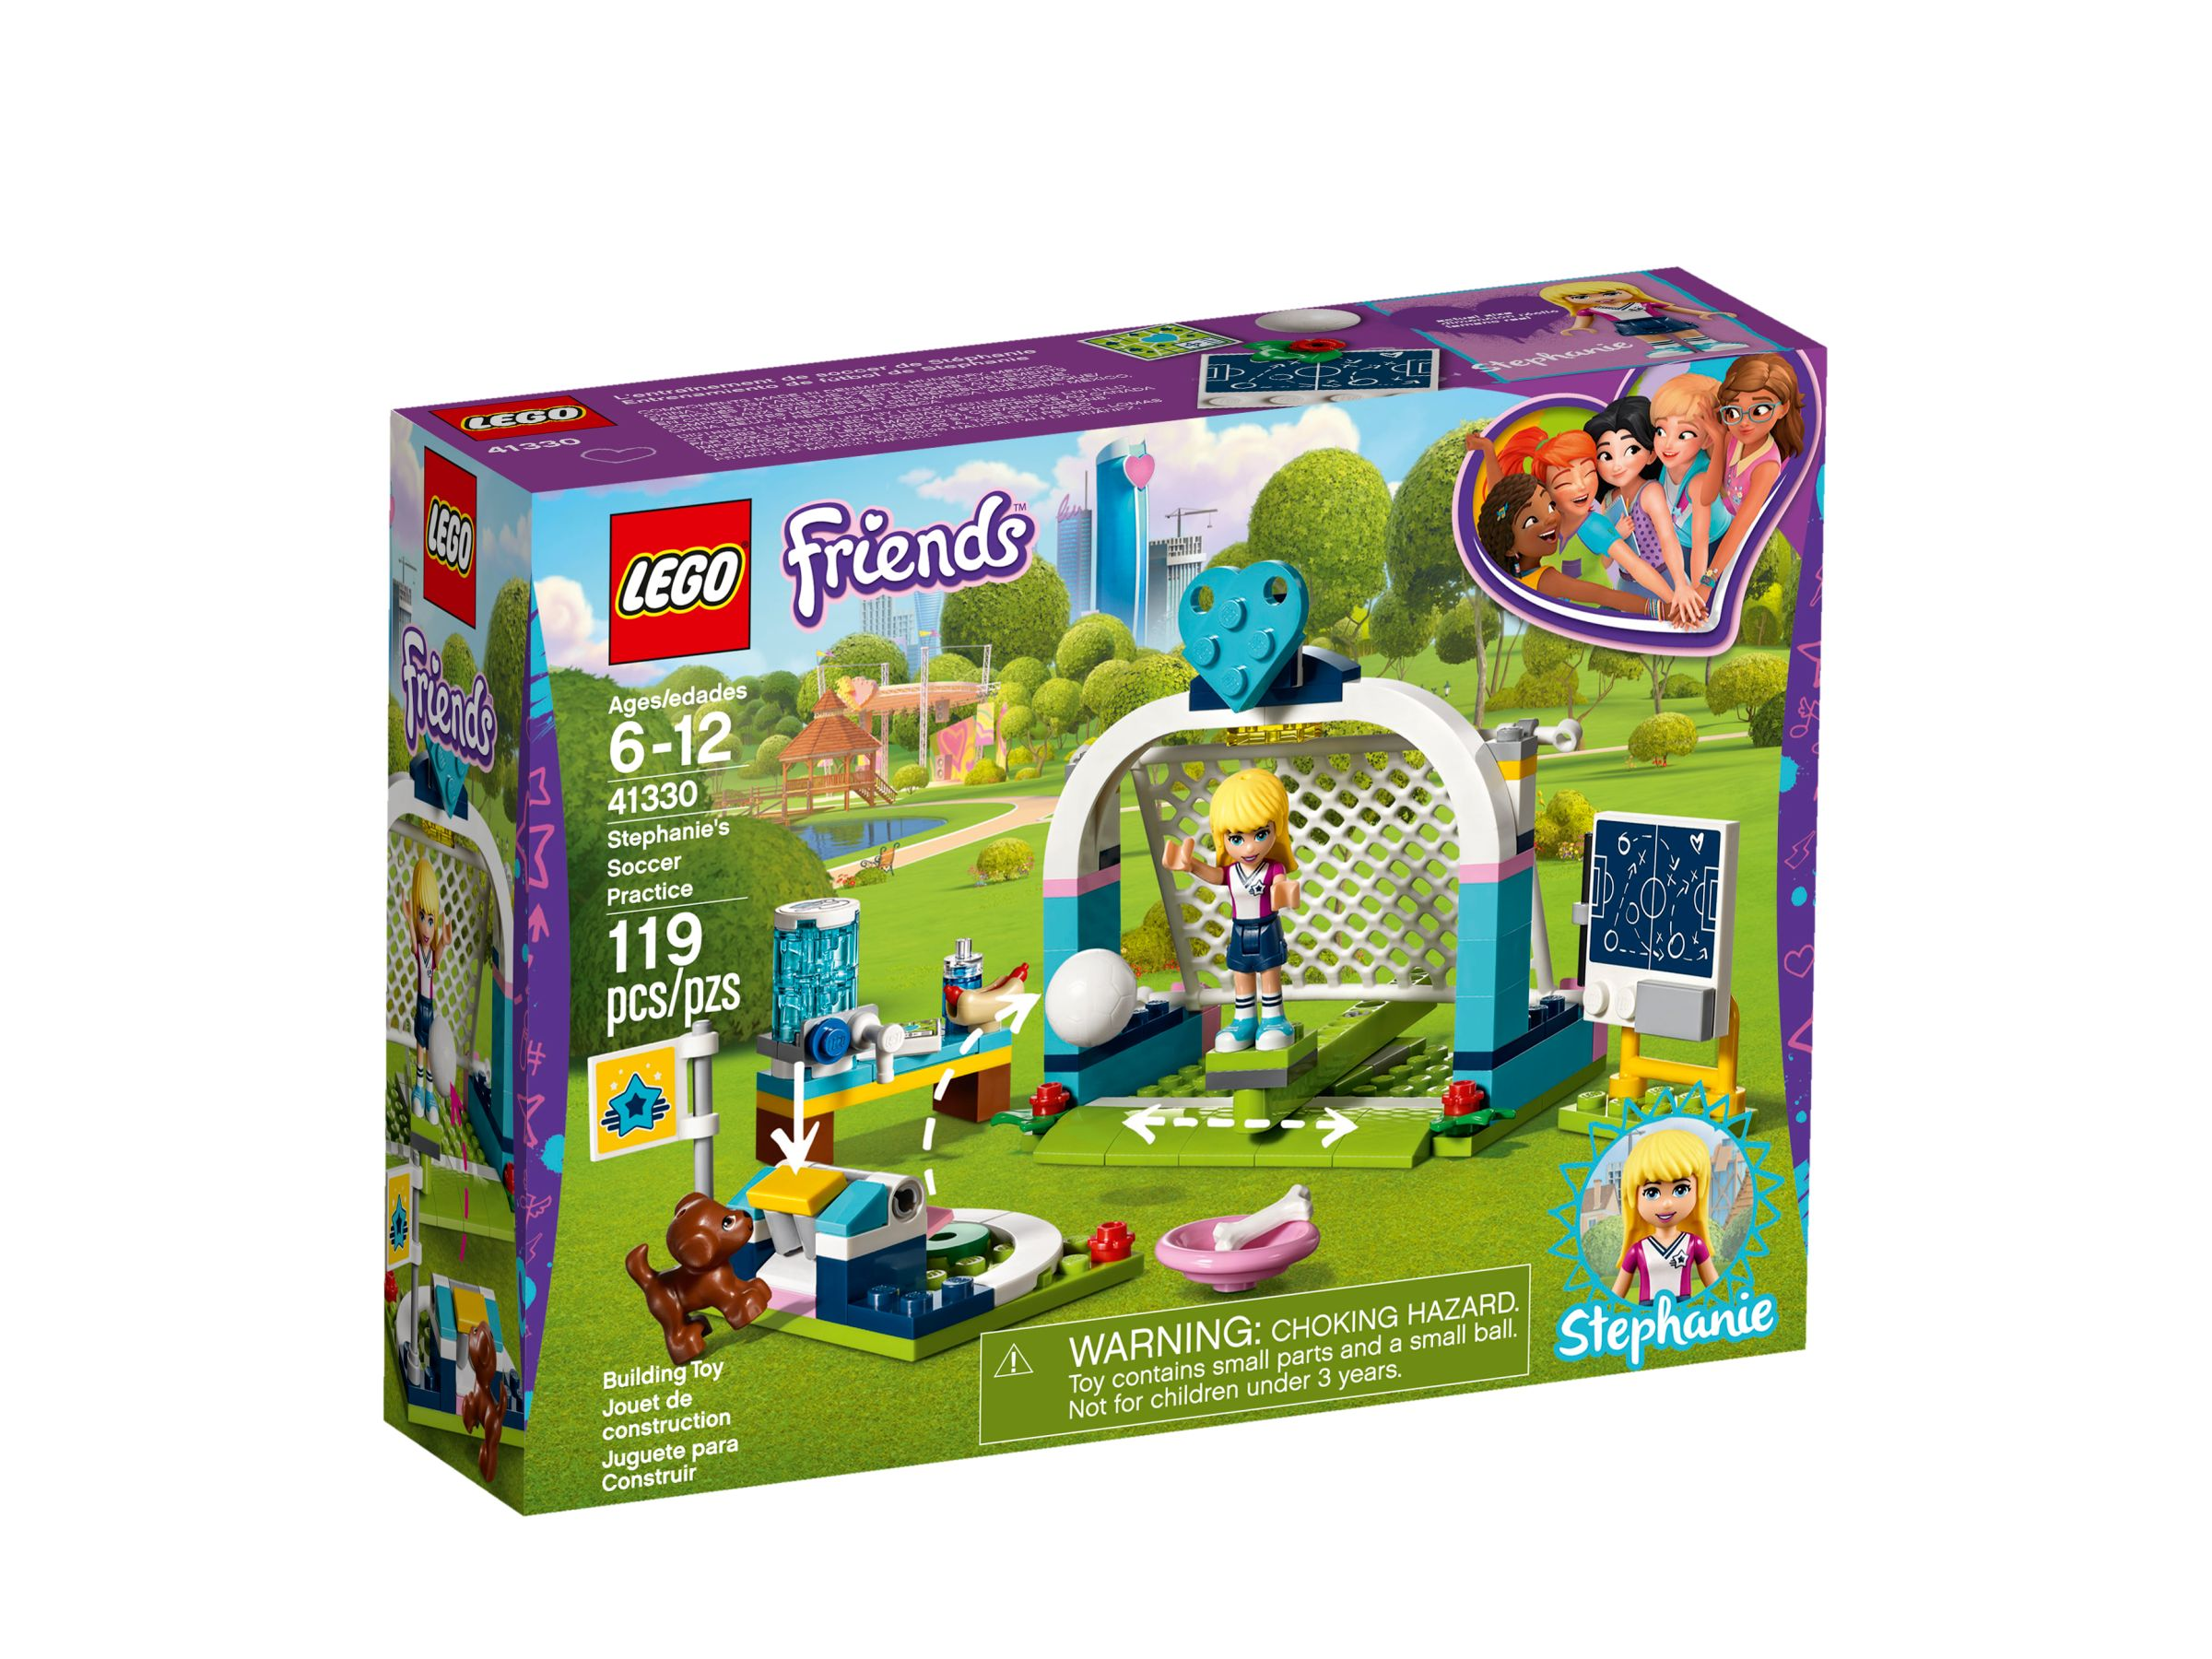 LEGO Friends 41330 Fußballtraining mit Stephanie LEGO_41330_alt1.jpg